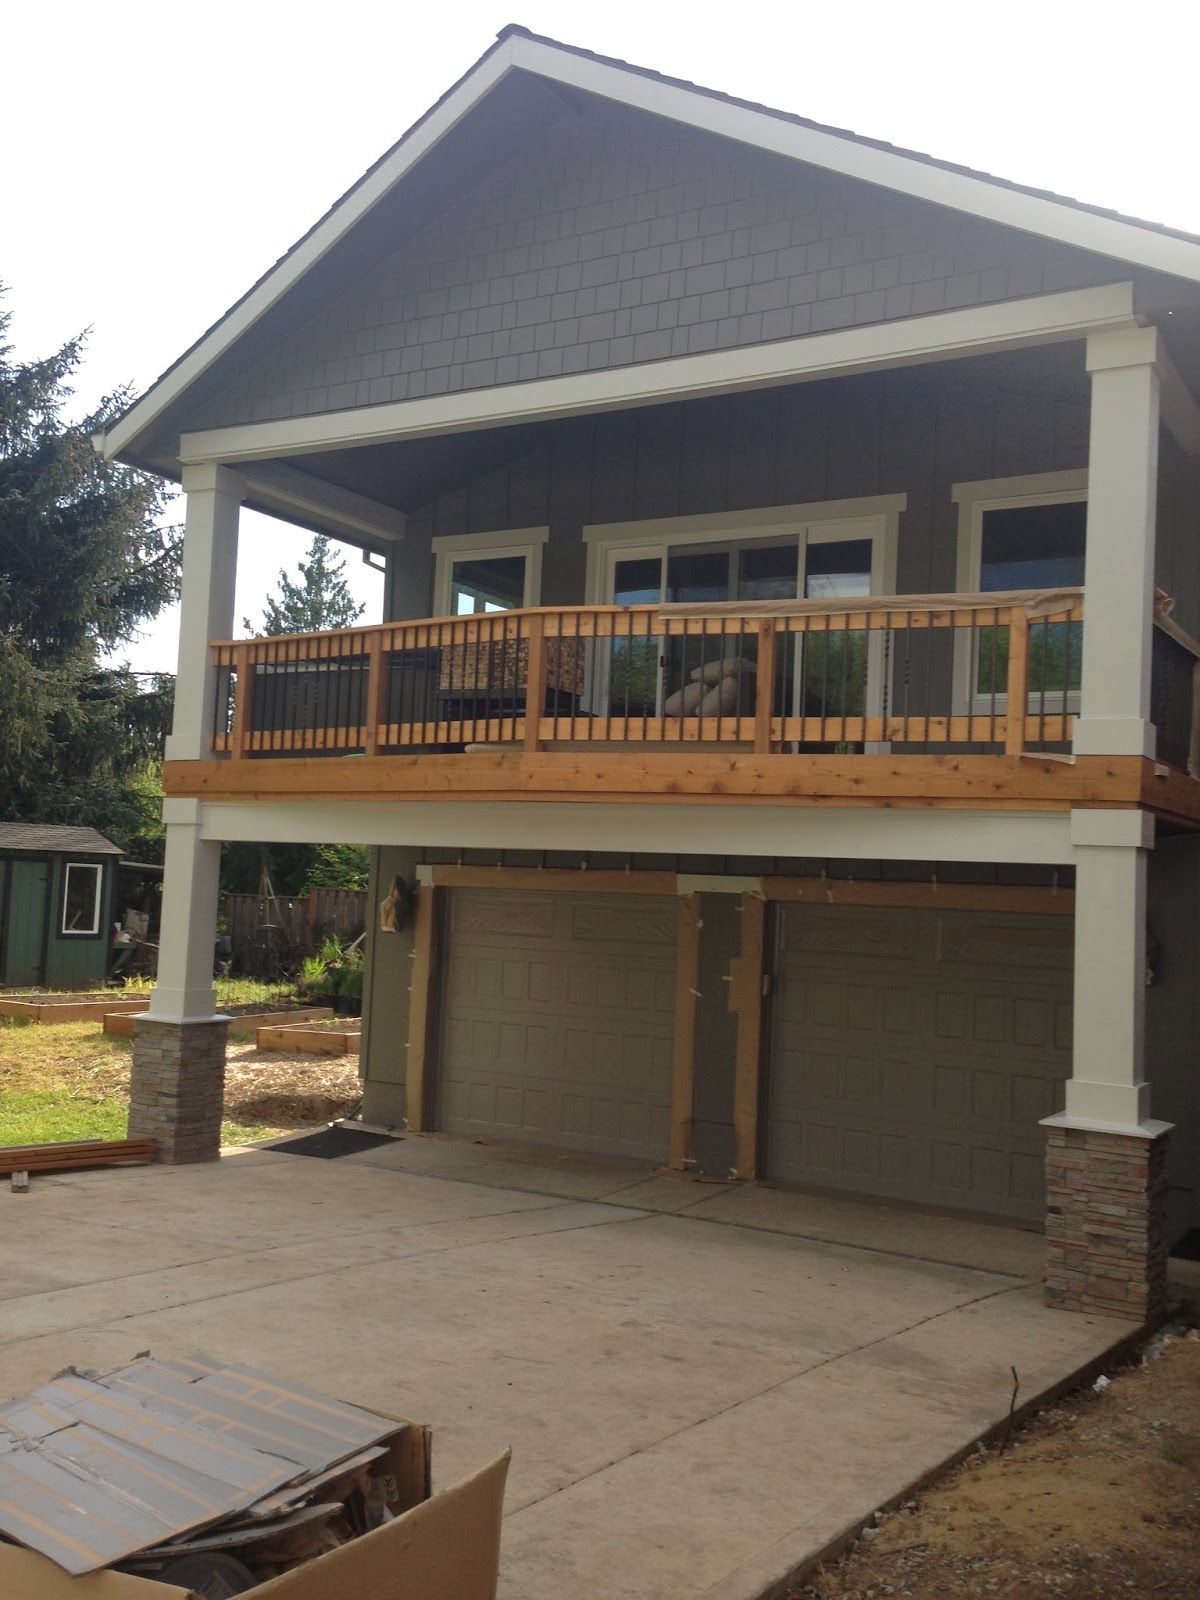 House Balcony Ideas Extend The Deck Over The Garage For Extra Covered Parking